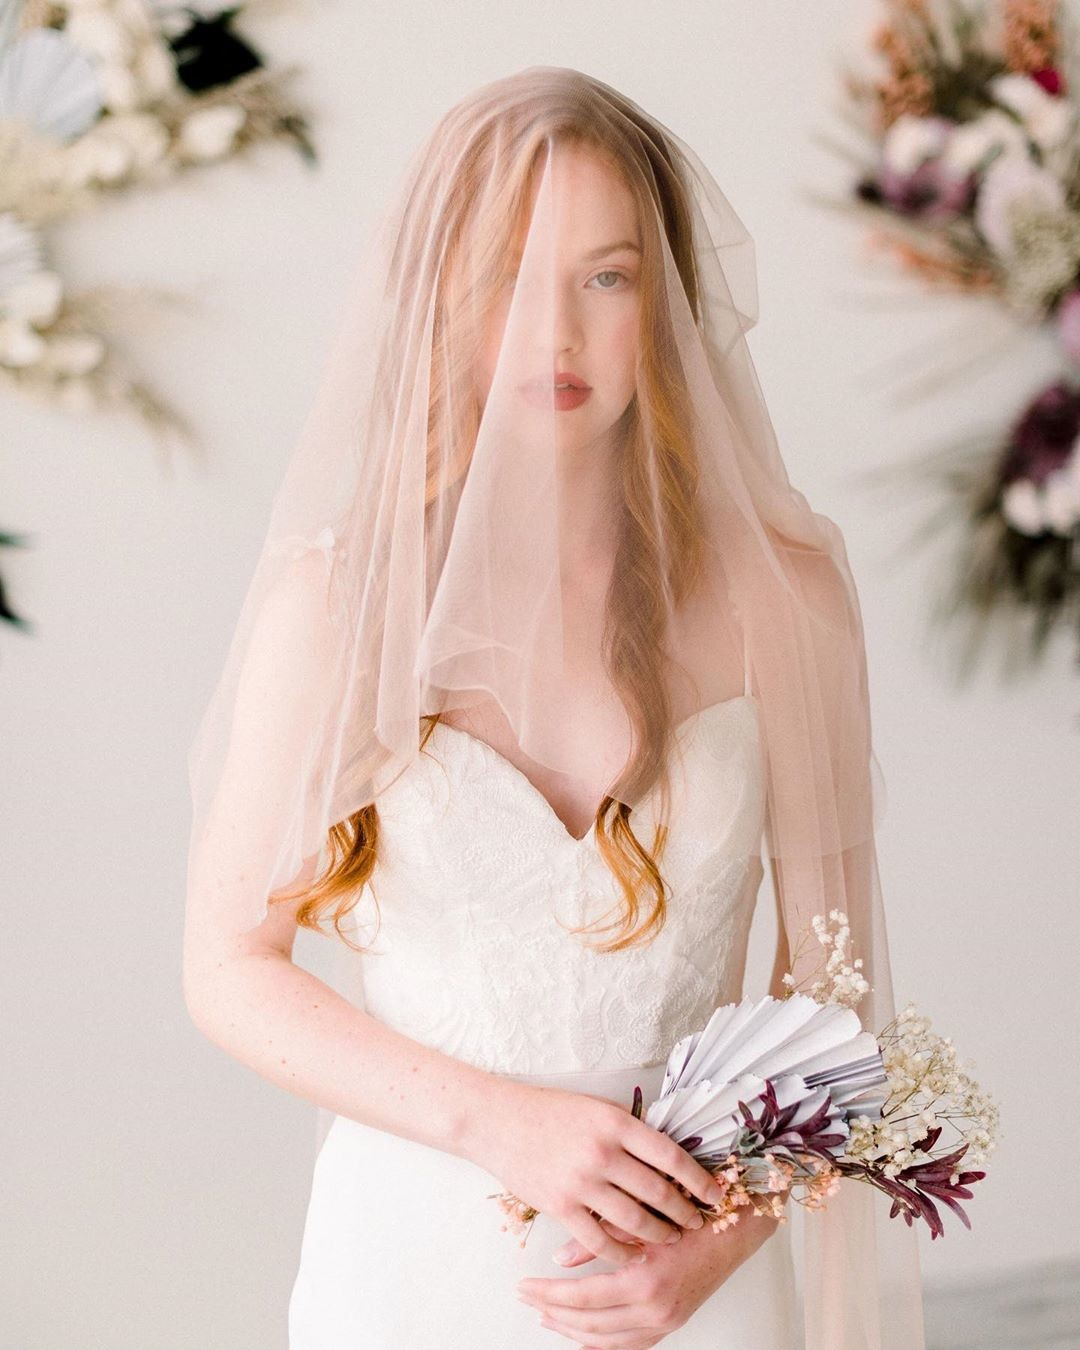 👰🏼Our new soft tulle bridal veils are a hybrid between our illusion tulle and English net veils. This veil offers the slight